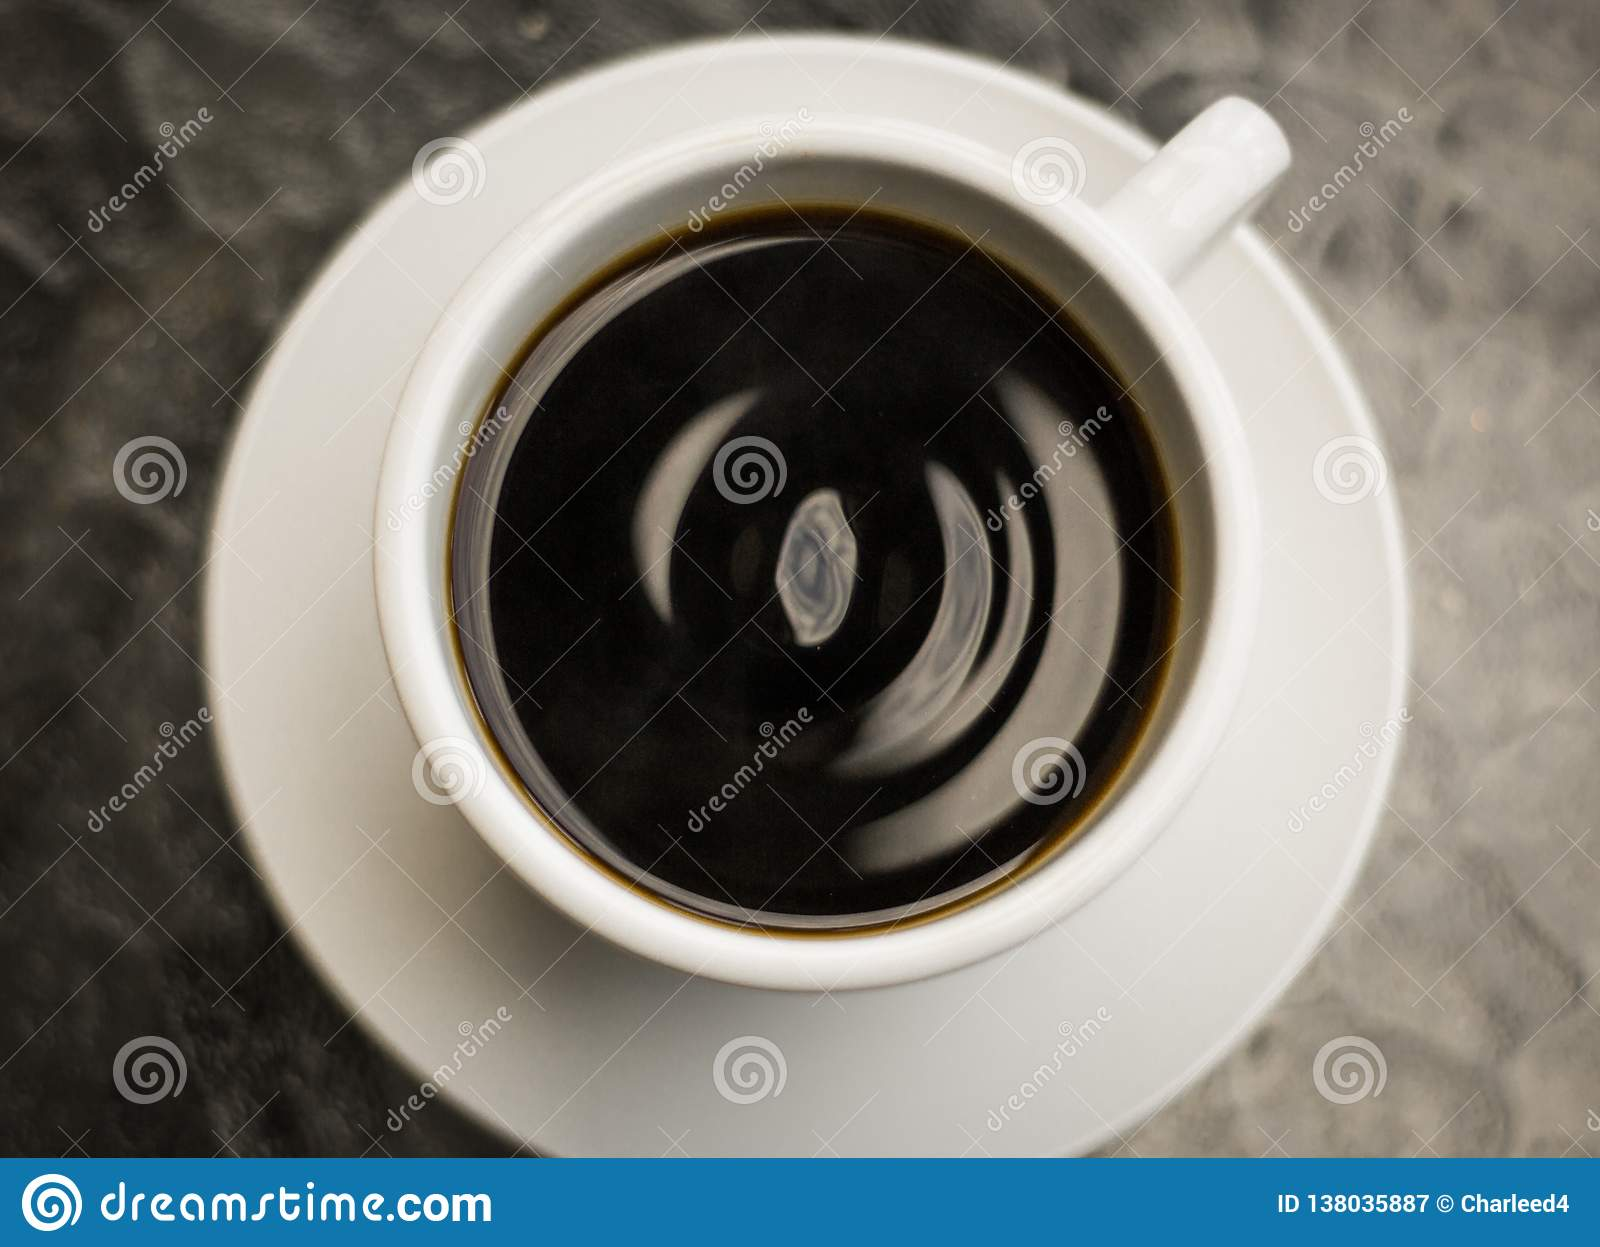 Top view from a drip coffee with wavy pattern